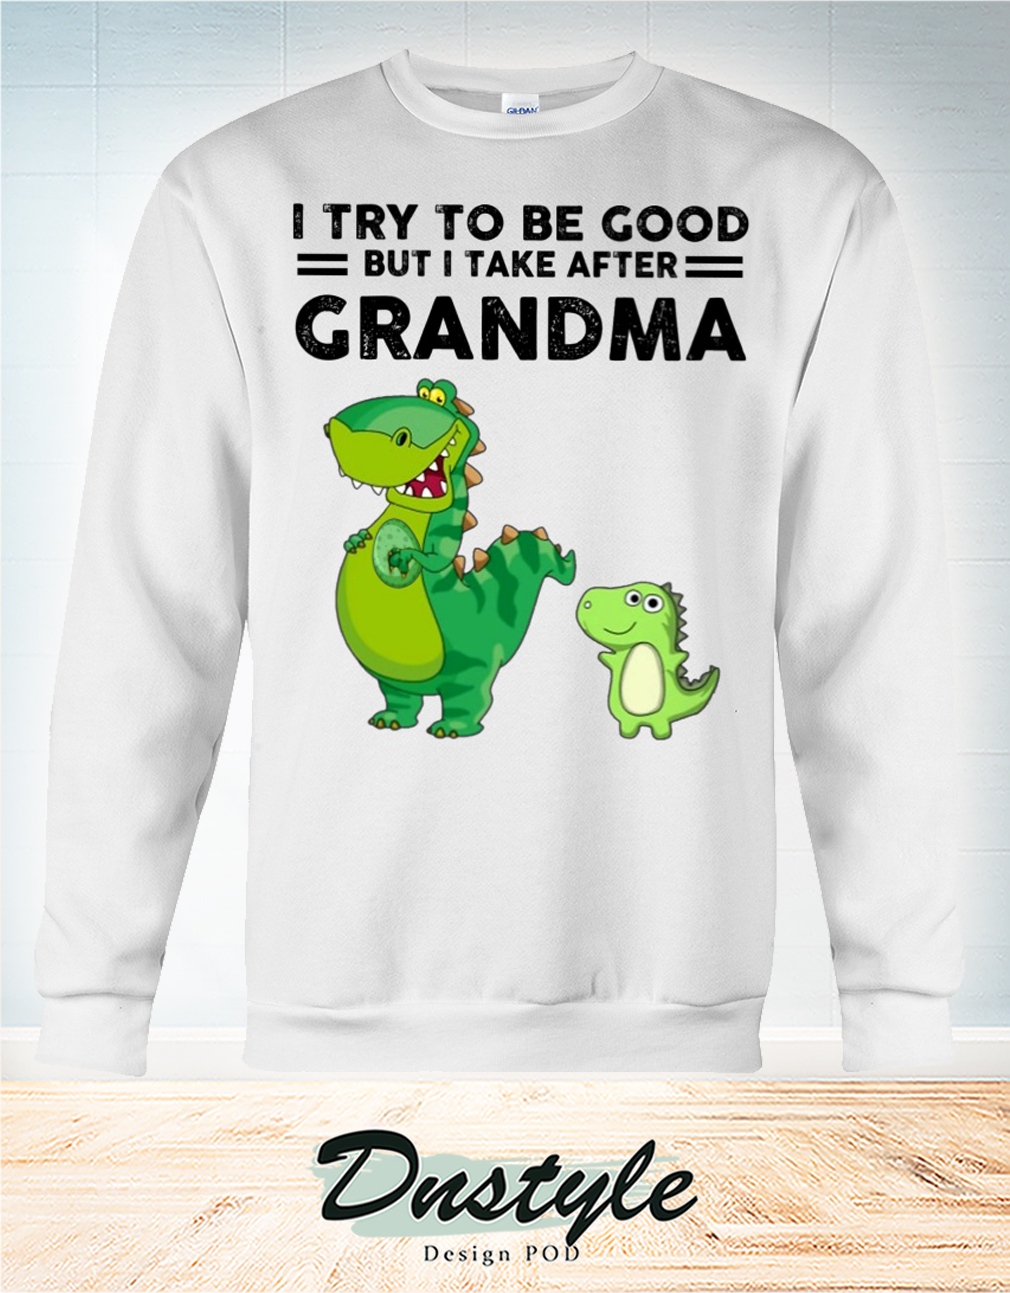 I try to be good but I take after grandpa 2021 sweatshirt